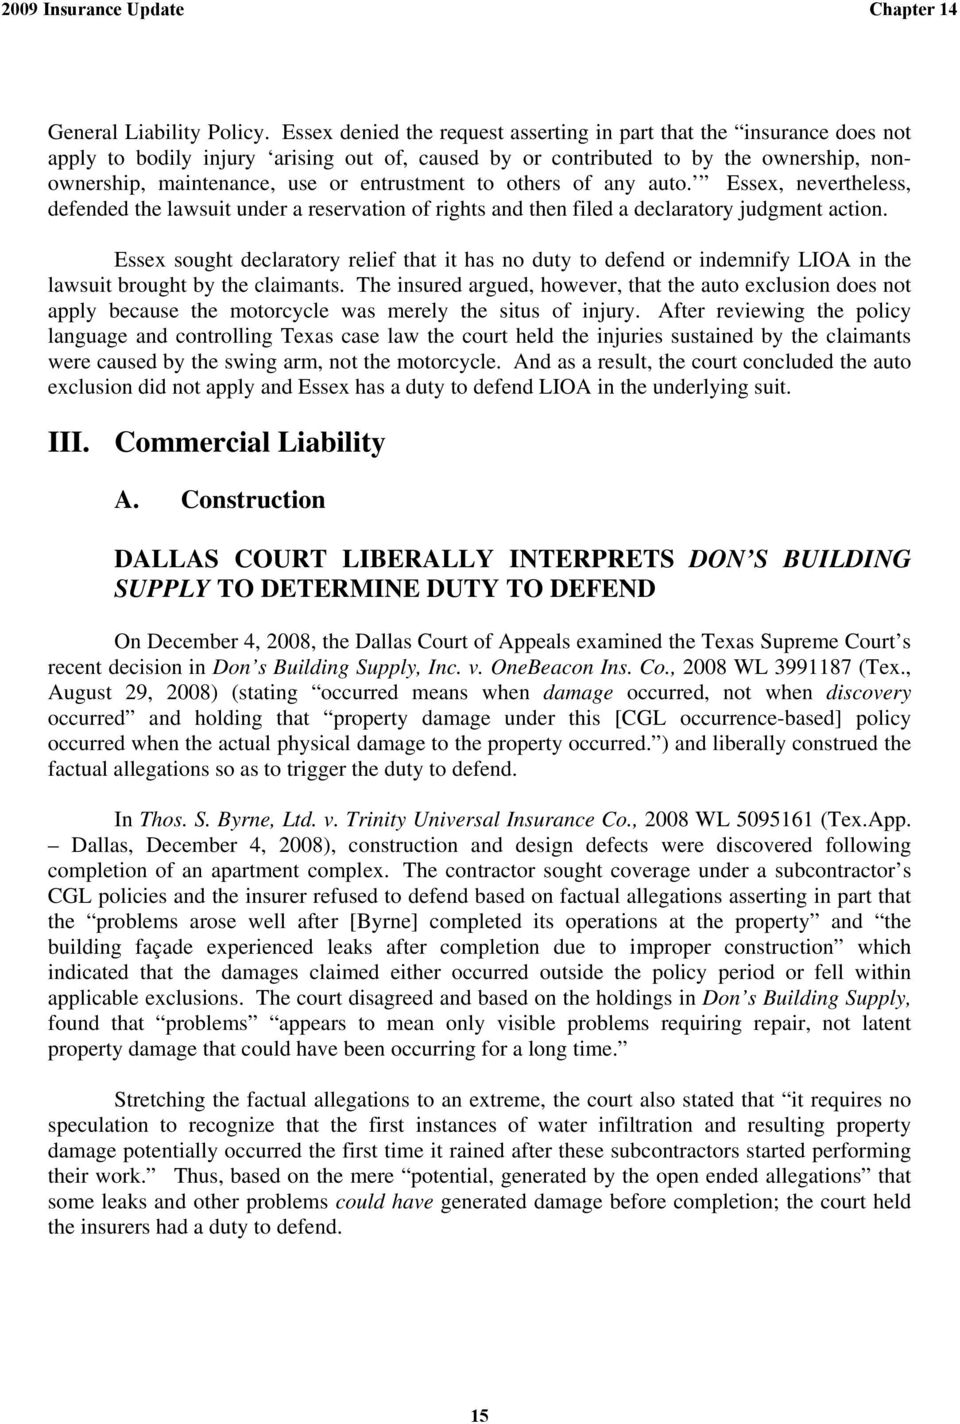 entrustment to others of any auto. Essex, nevertheless, defended the lawsuit under a reservation of rights and then filed a declaratory judgment action.